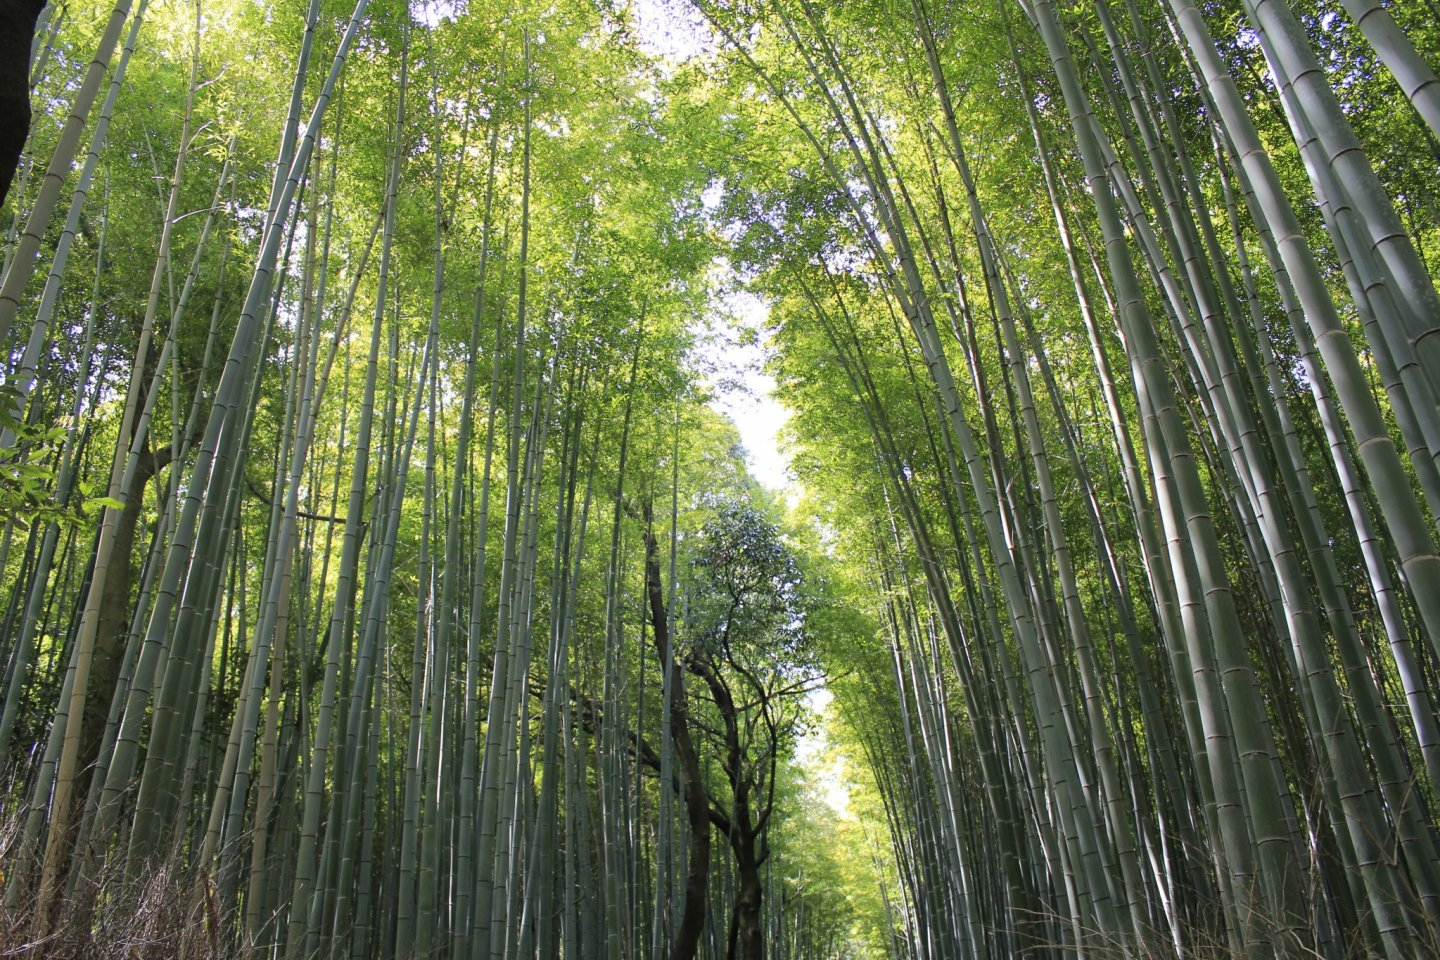 The Bamboo Forest of Arashiyama - Arashiyama, Kyoto - Japan Travel